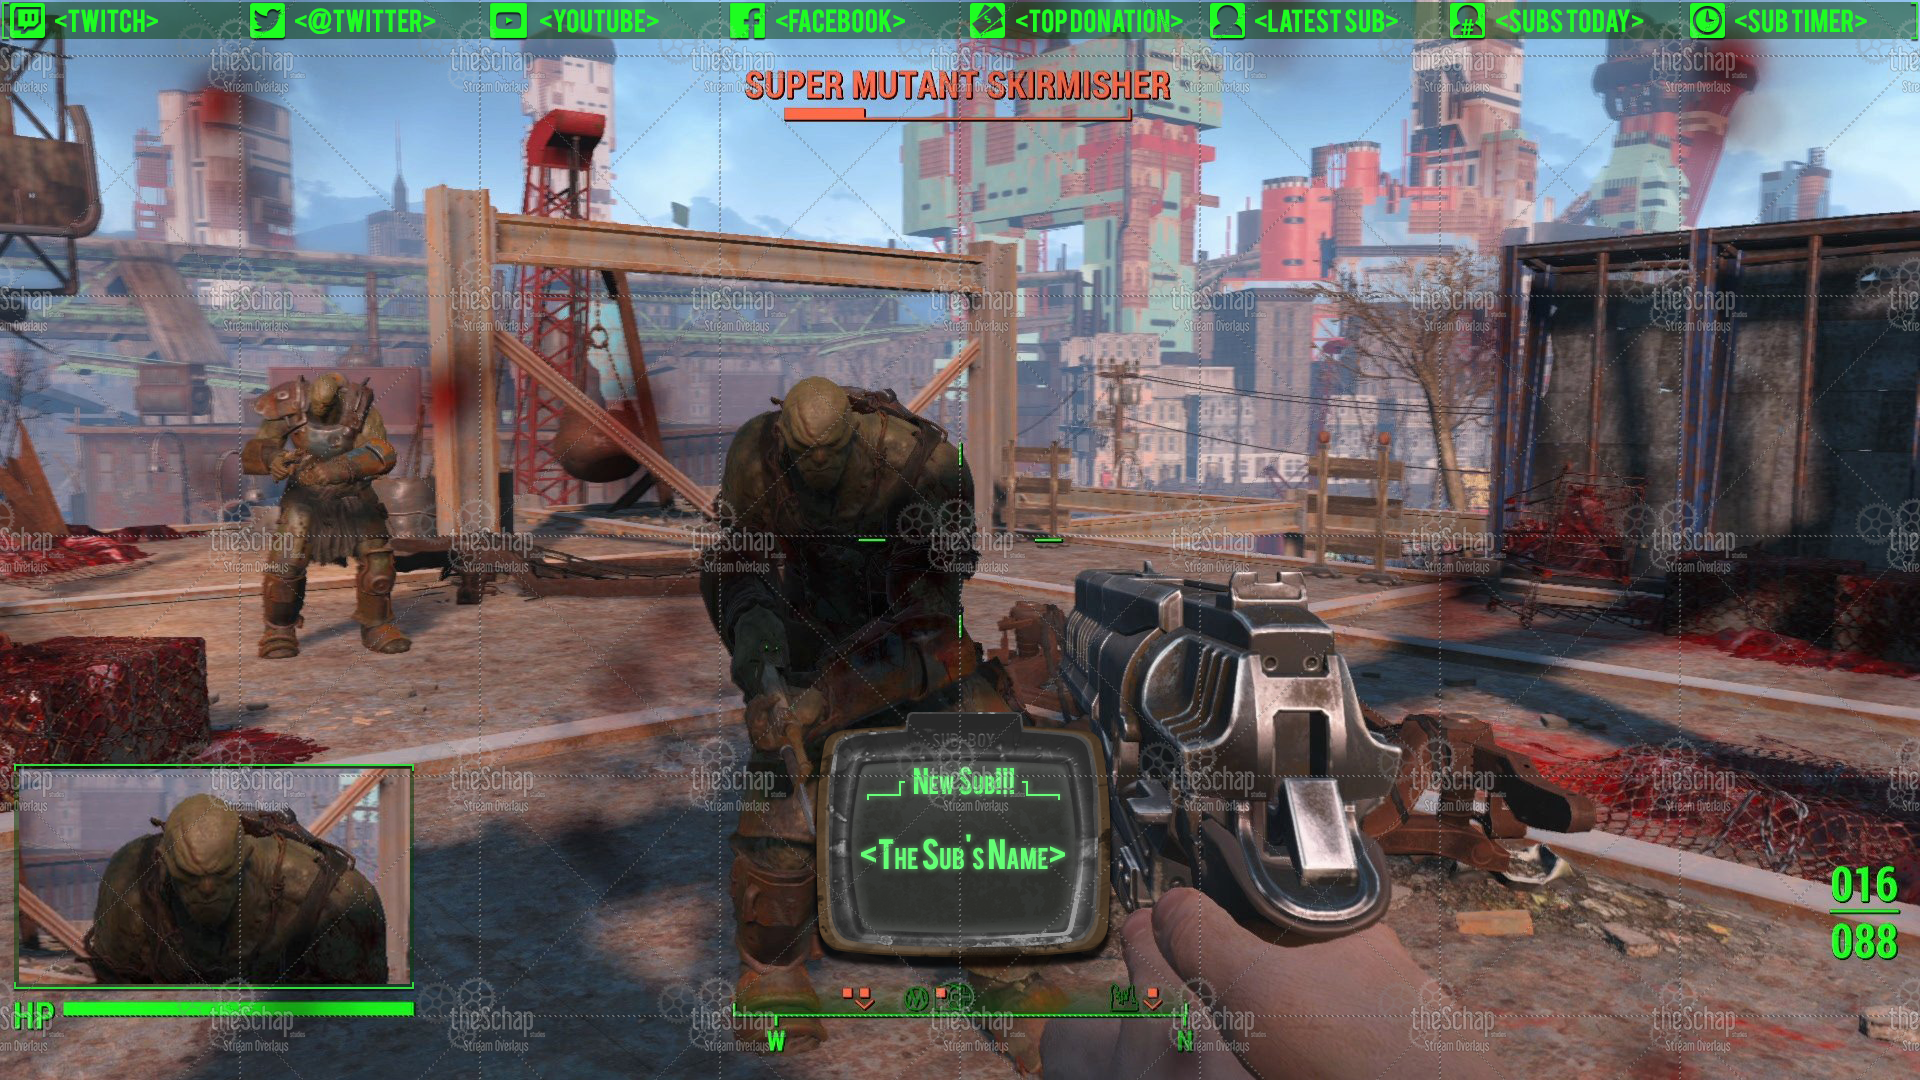 theSchap_Fallout4_Preview